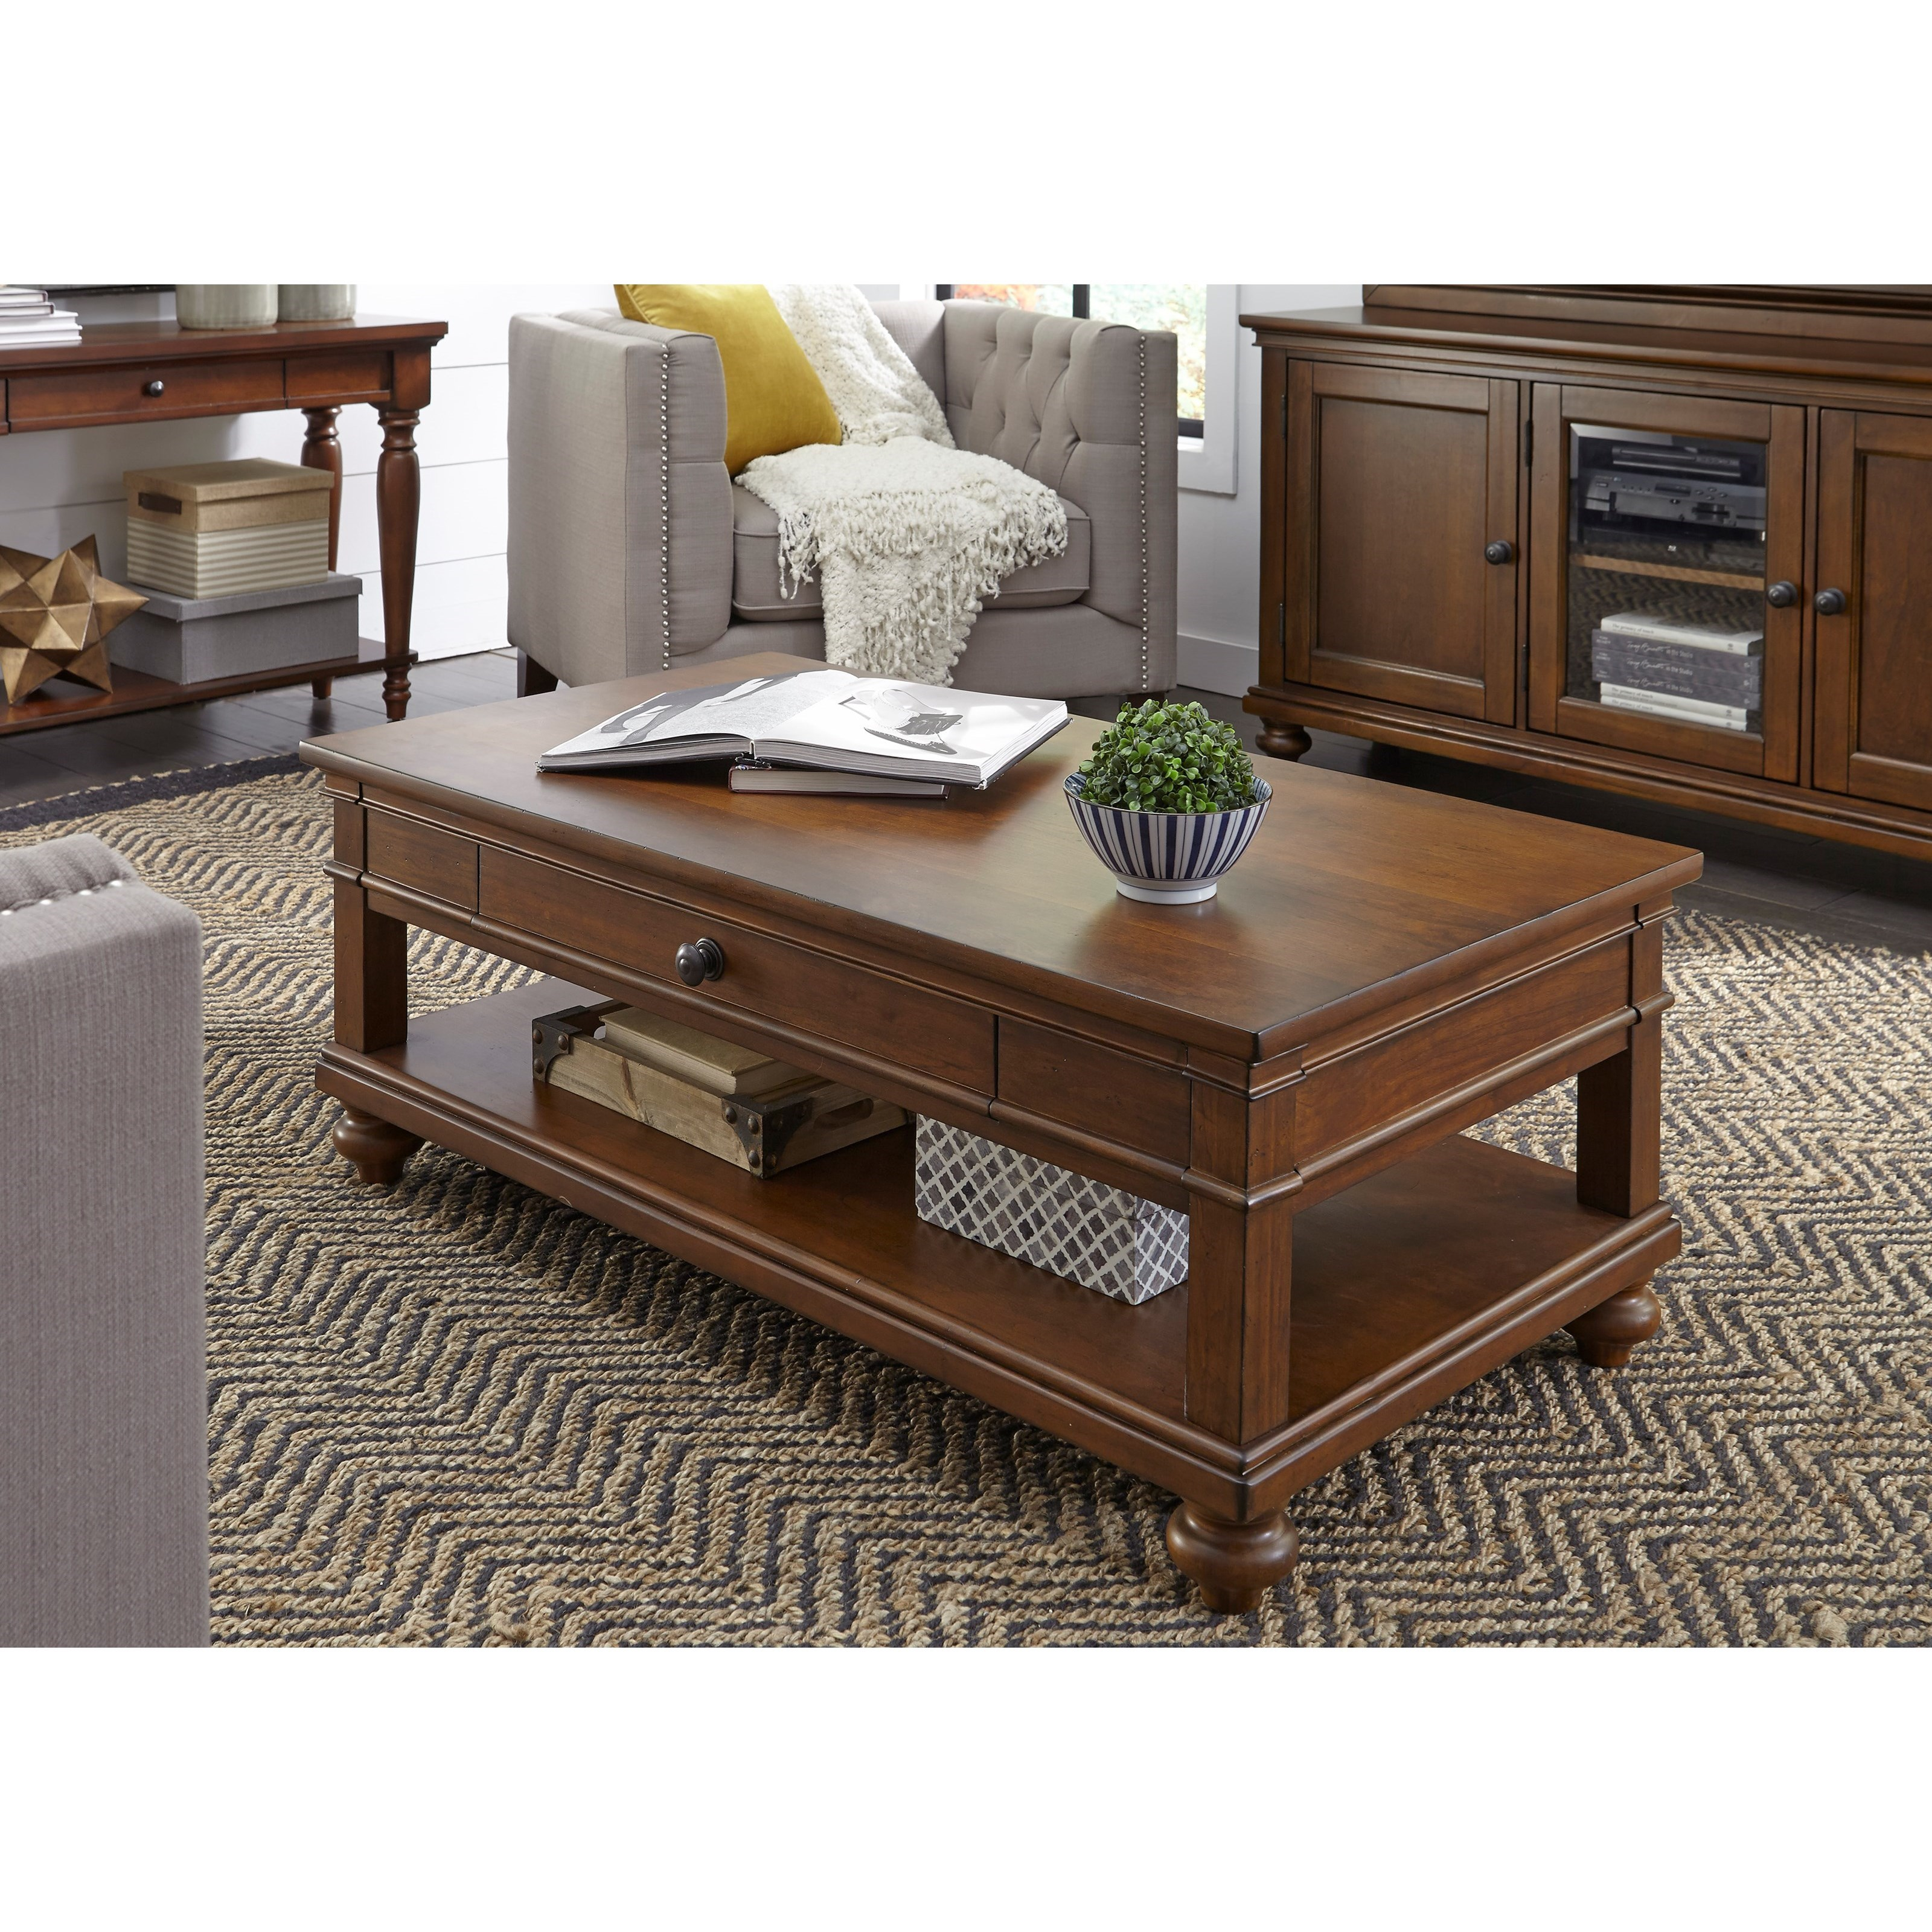 Oxford Cocktail Table with Casters by Aspenhome at Walker's Furniture